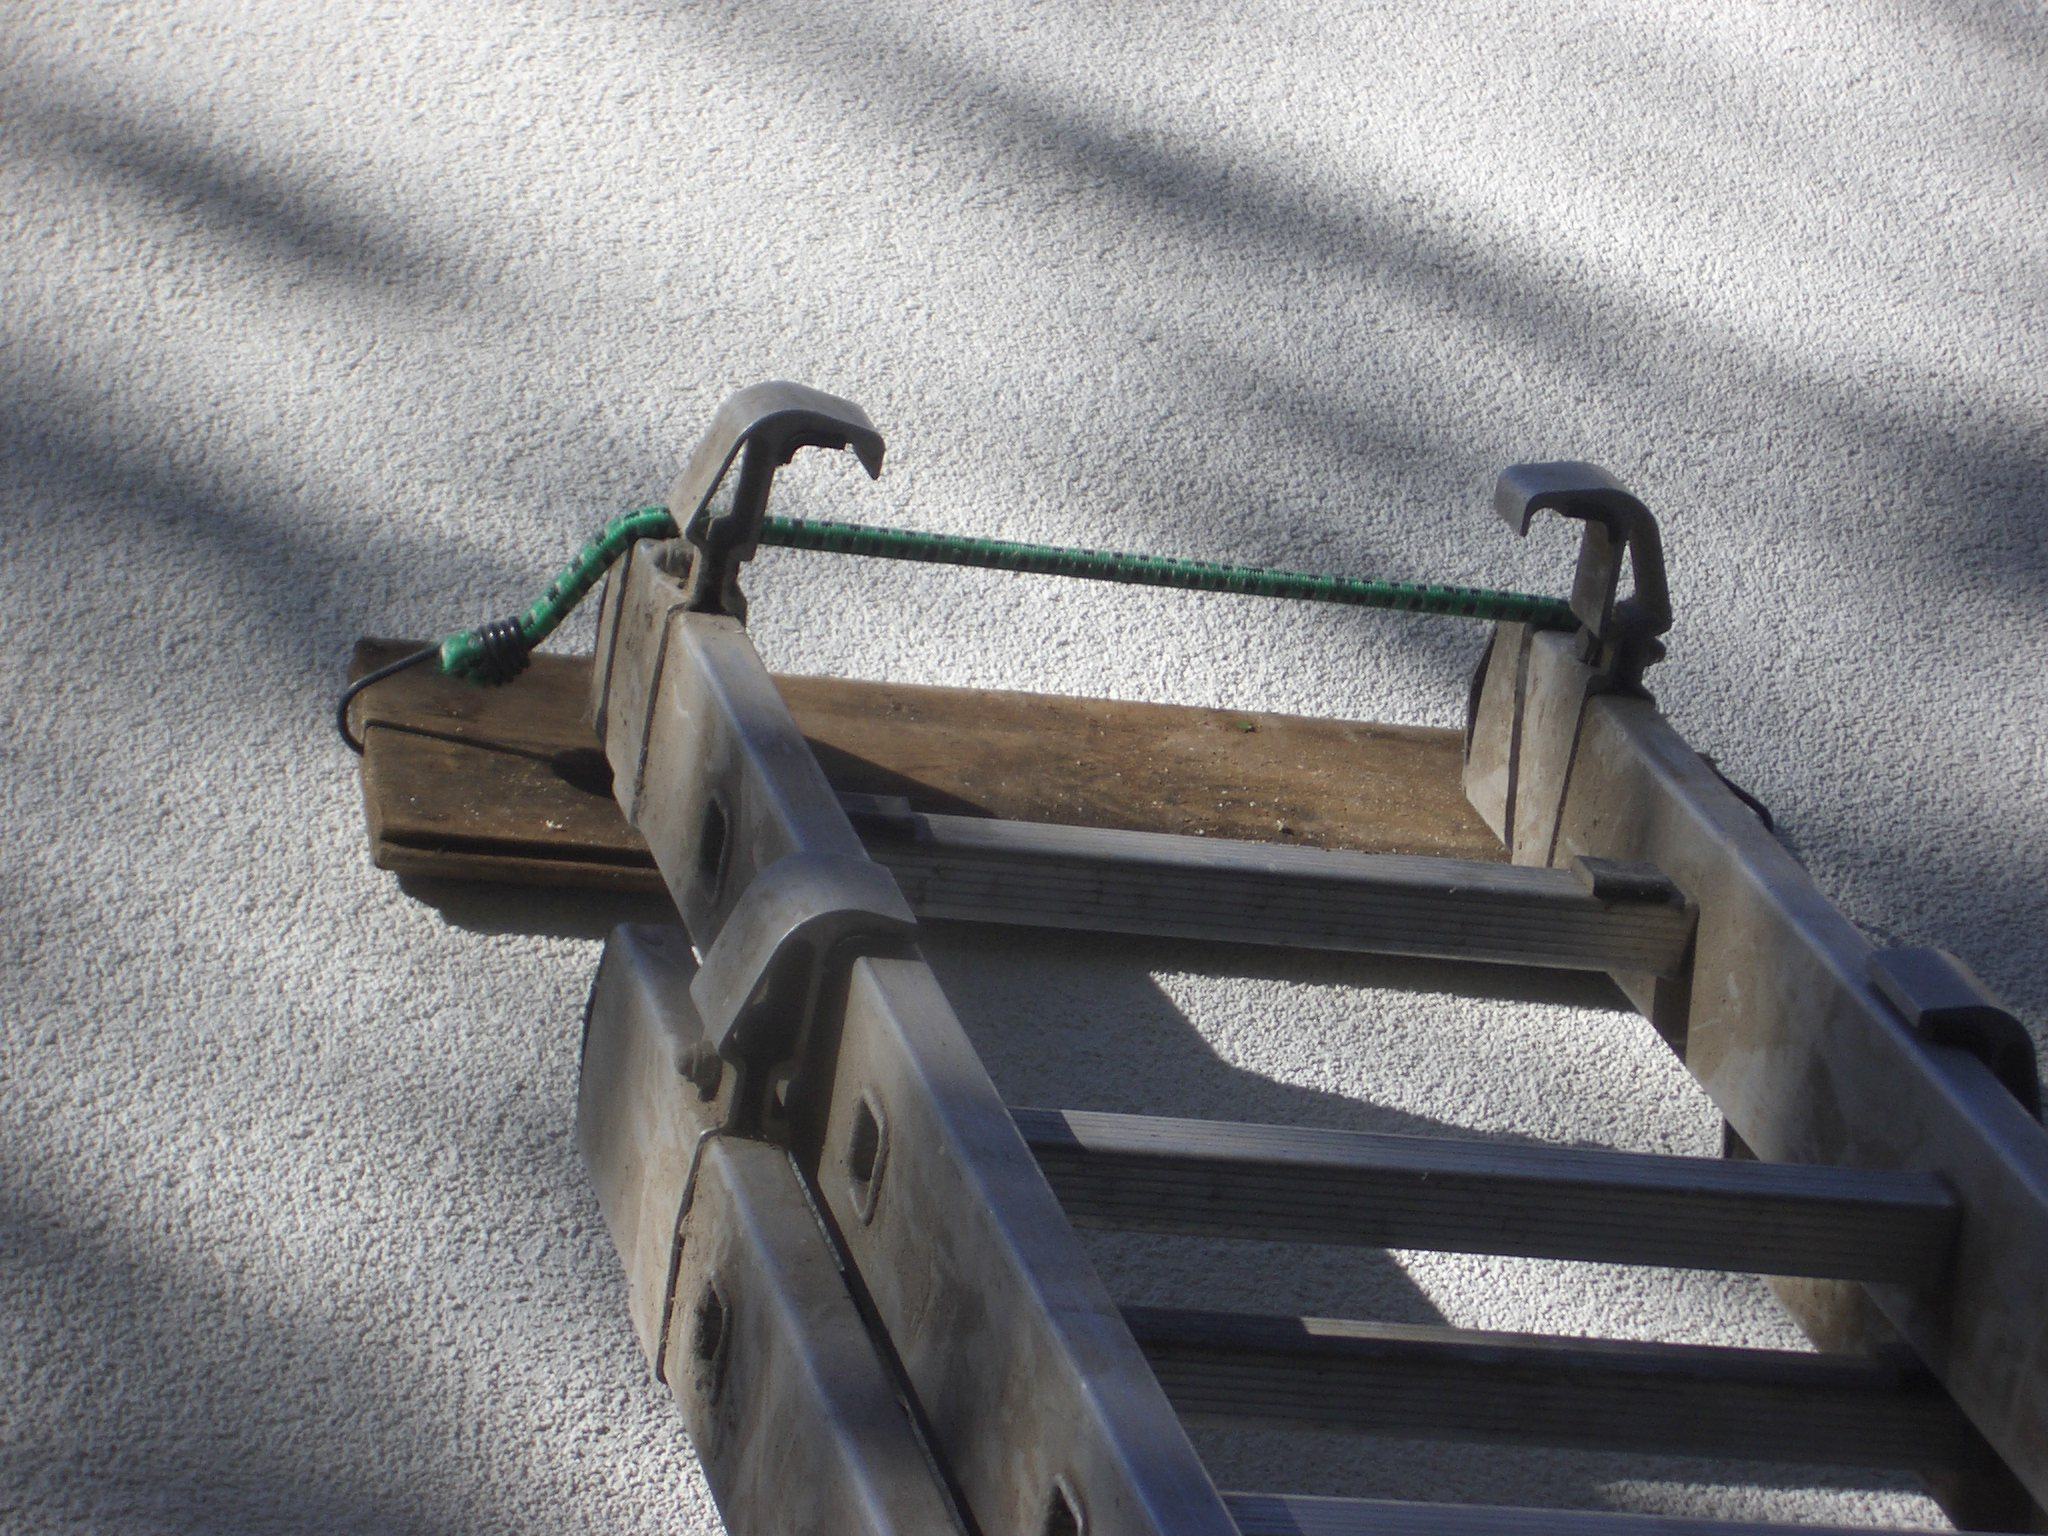 Picture of The Spreader Board in Use